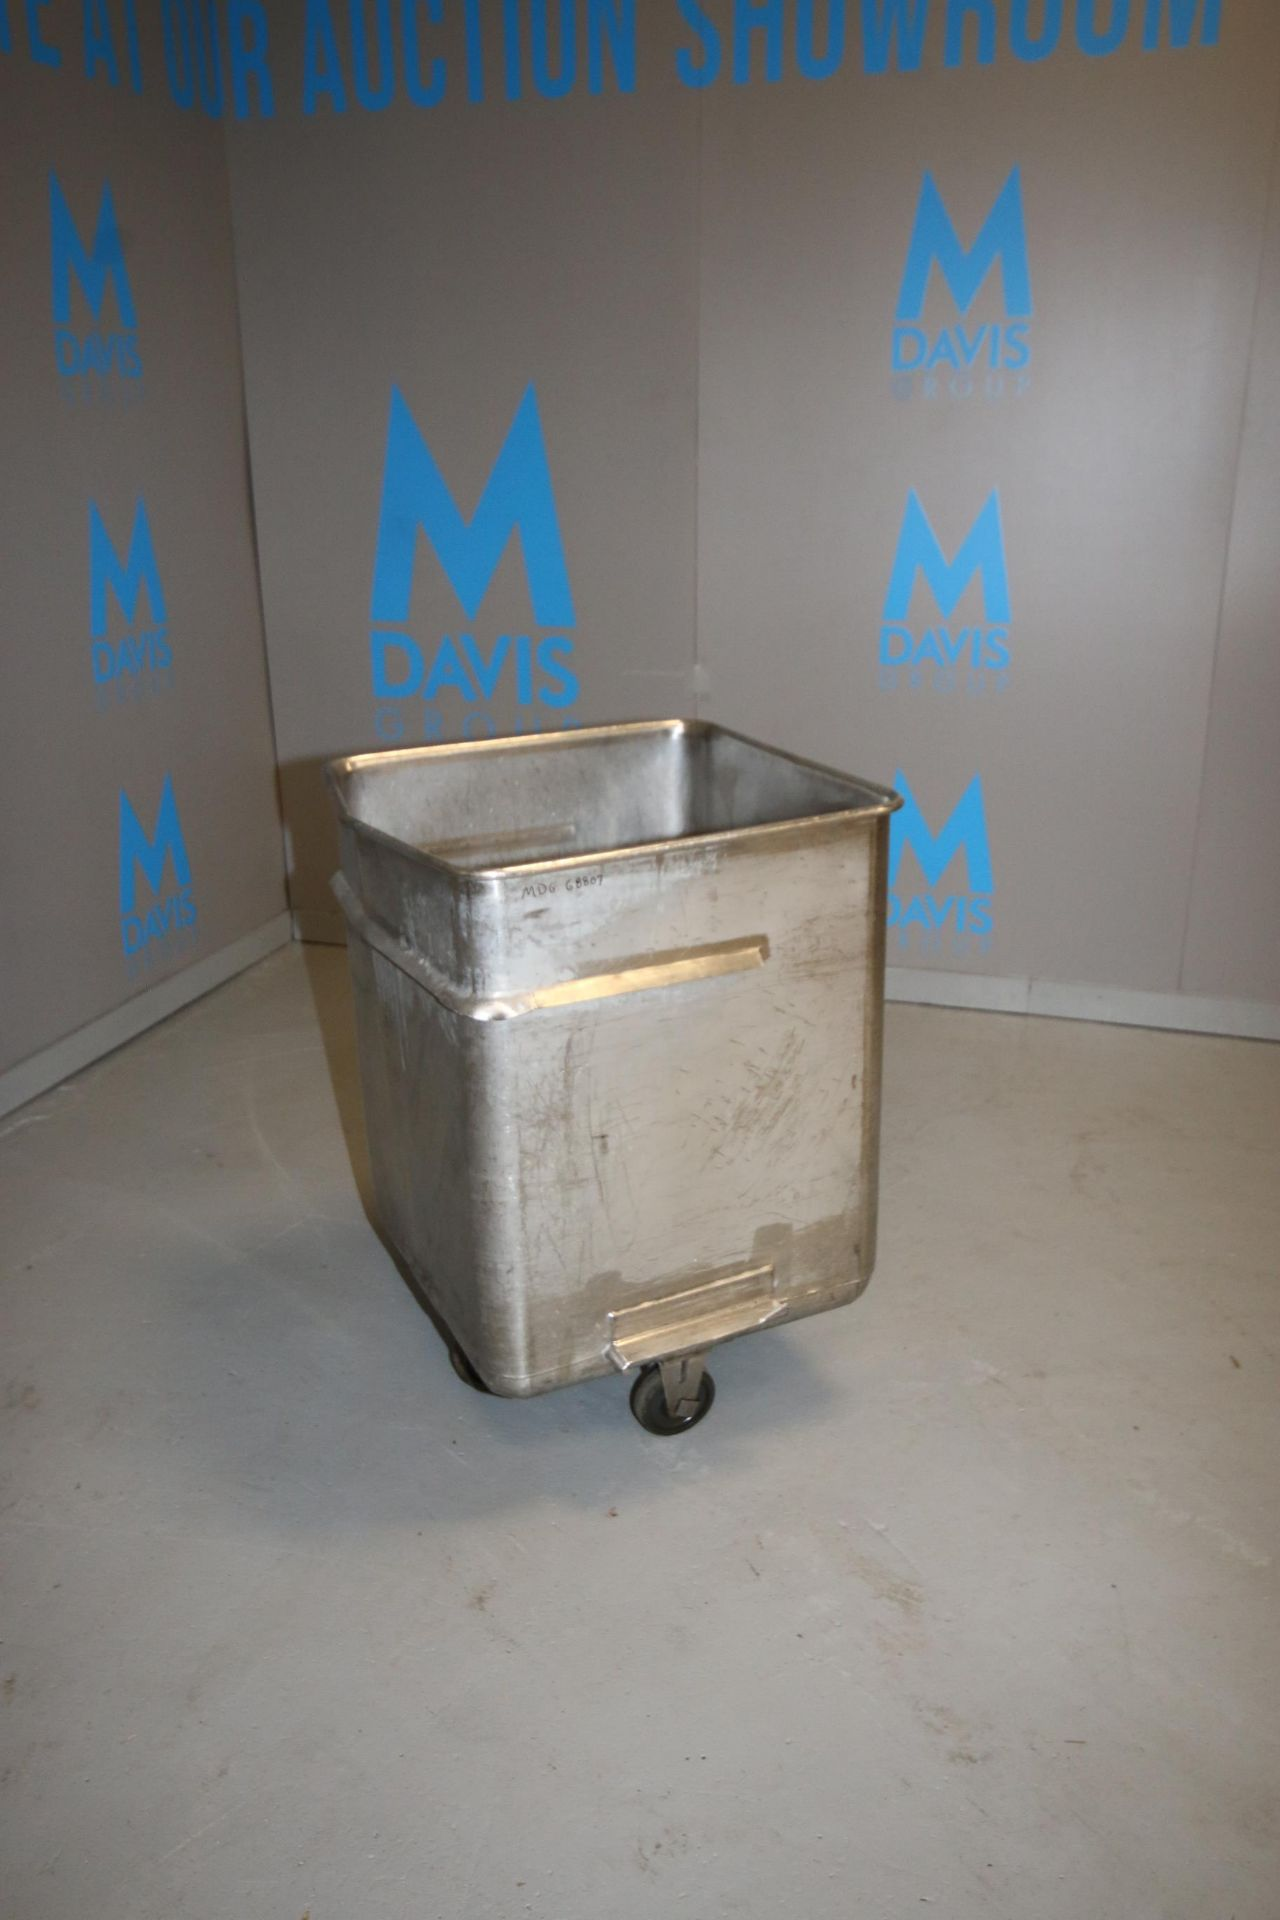 "S/S Portable Totes, Internal Dims.: Aprox. 24"" L x 24-1/2"" W x 31"" Deep, with (4) Bottom Mounted"